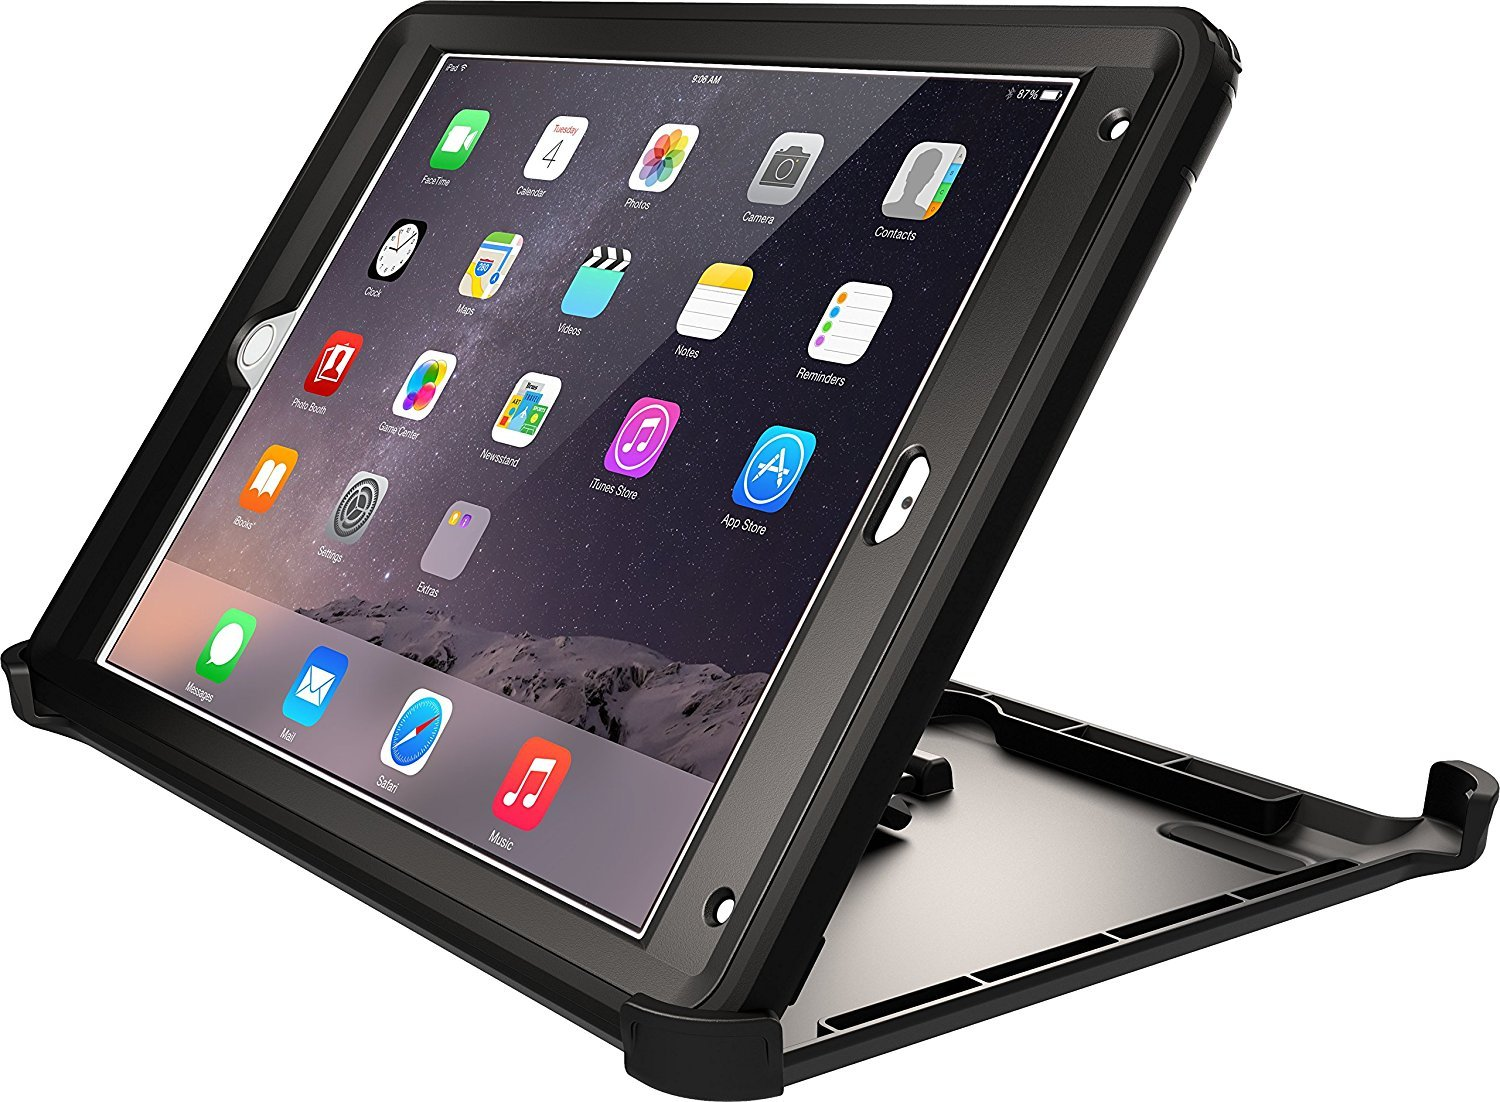 info for ecbe4 91501 OtterBox Defender Series Replacement Stand ONLY for Apple iPad Air 2 -  Black (New, Non-Retail Packaging)